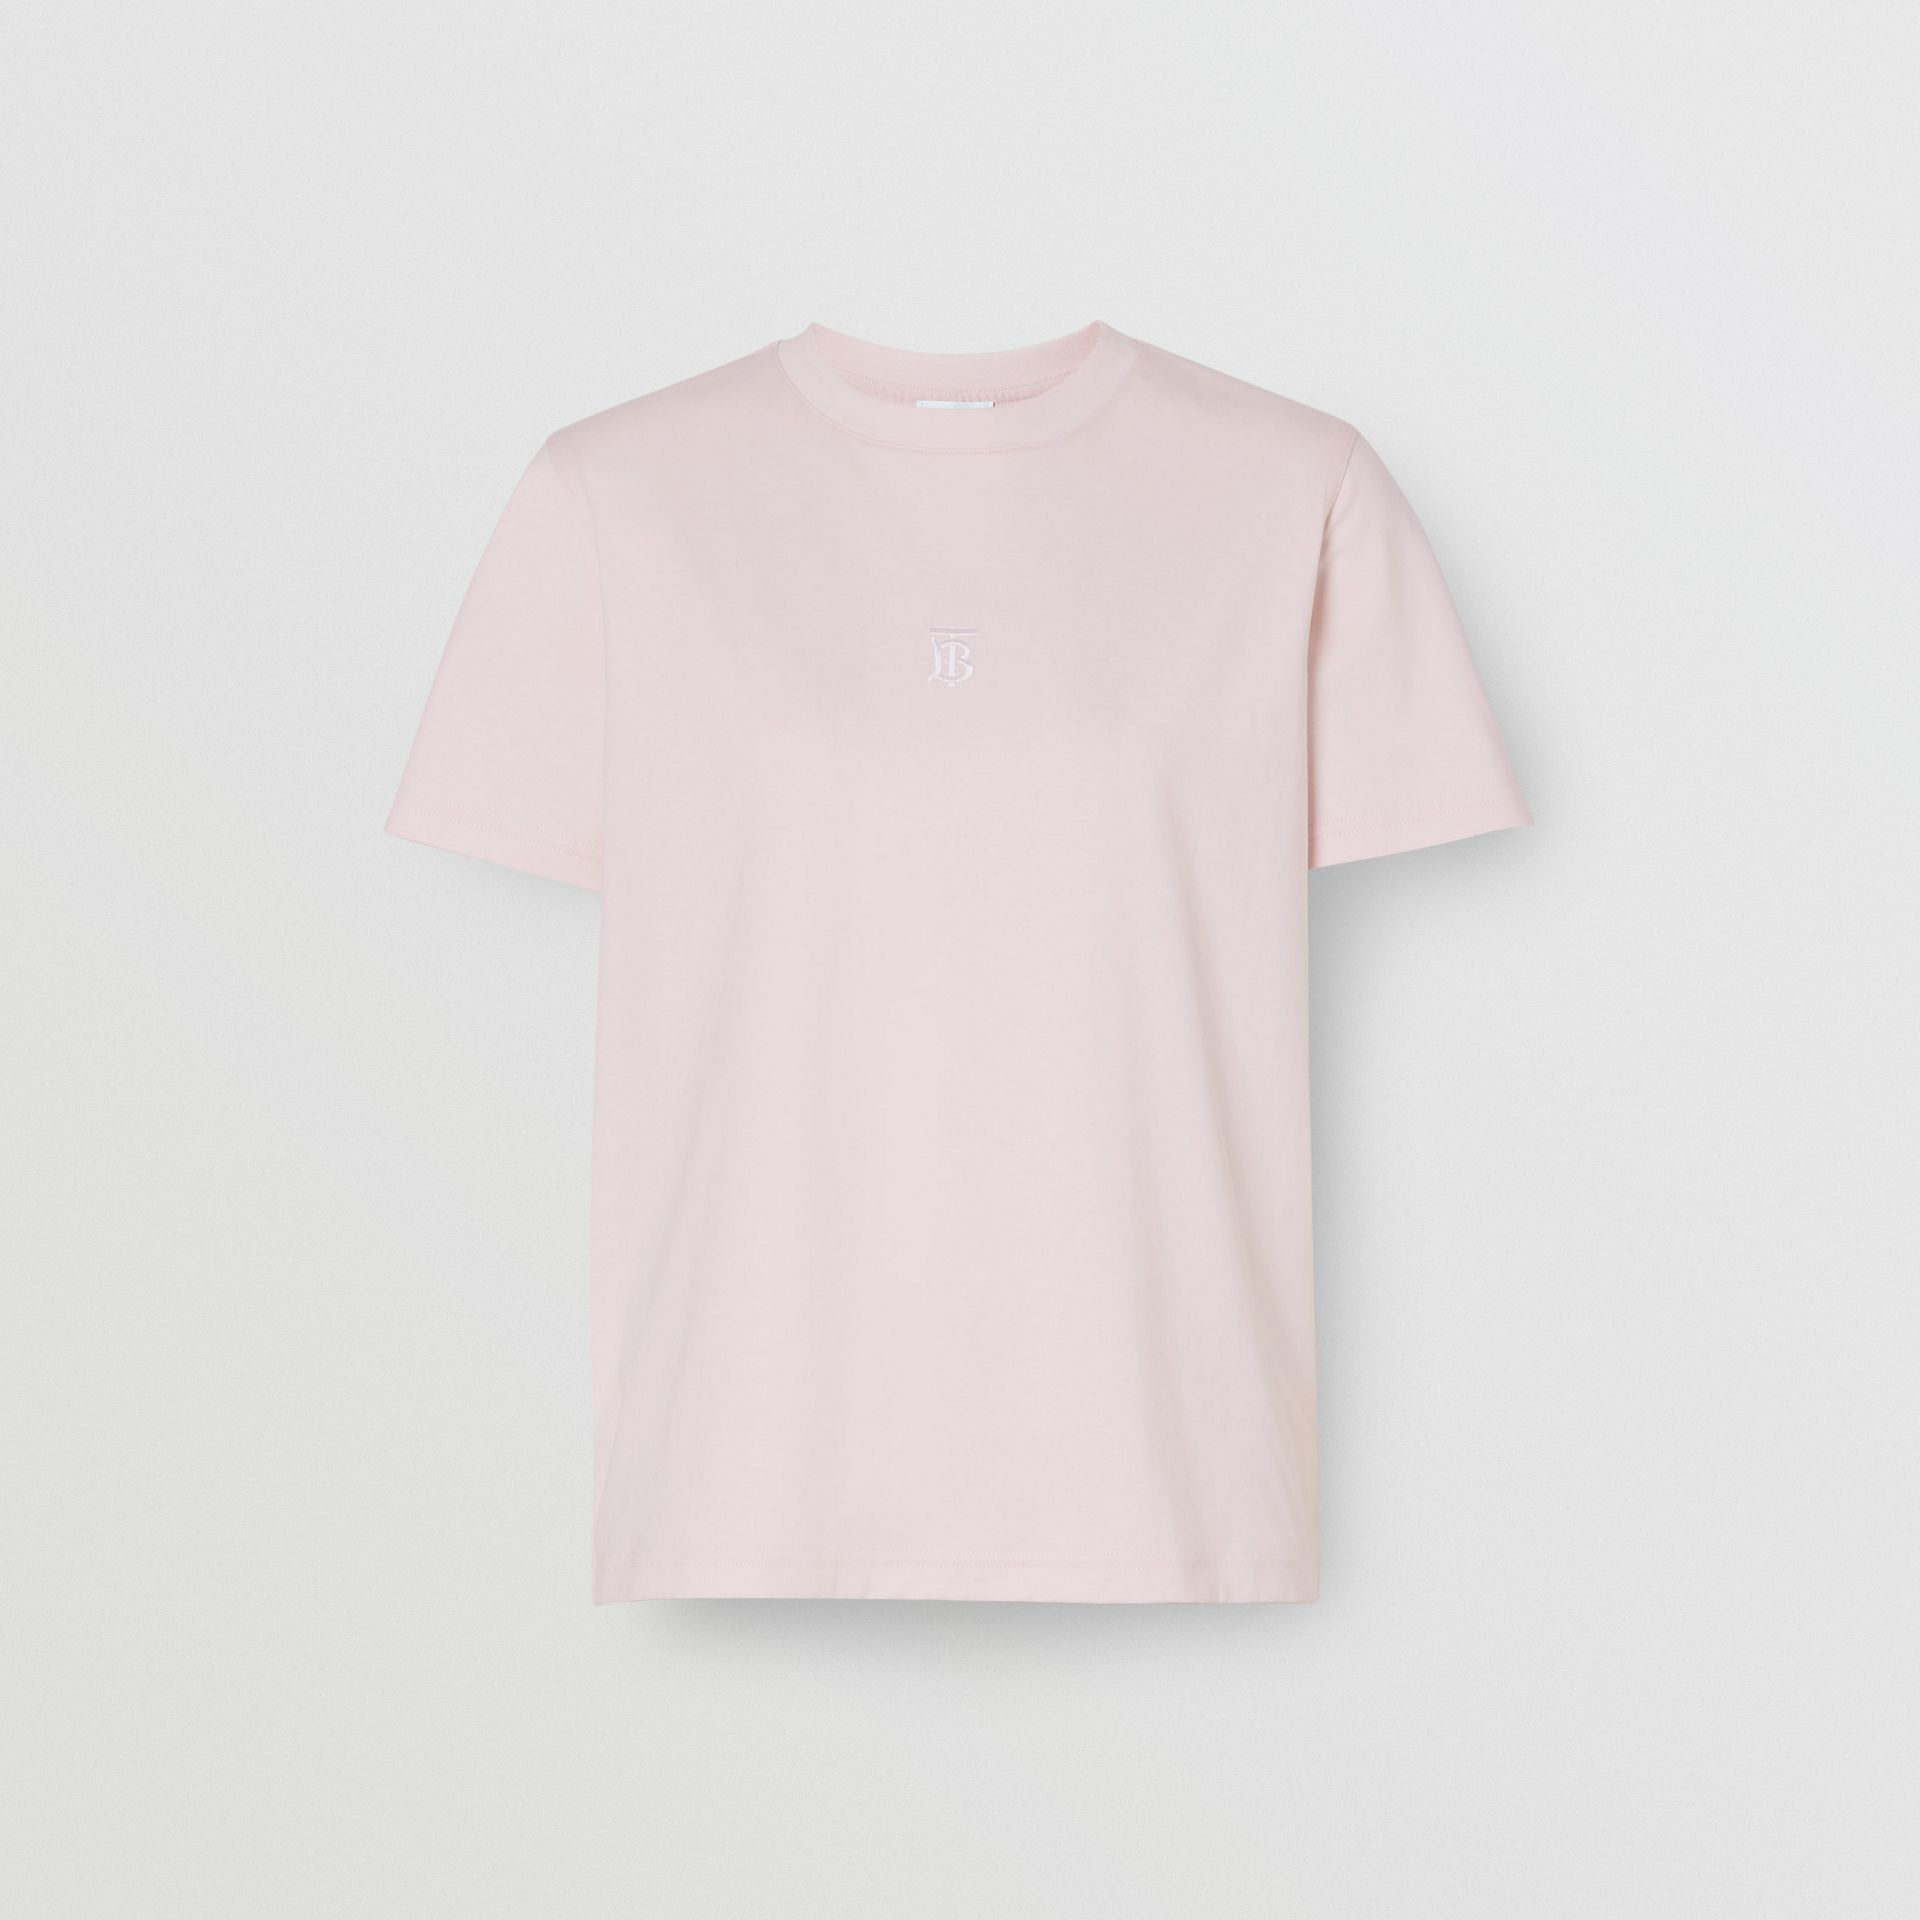 Monogram Motif Cotton T-shirt in Alabaster Pink - Women | Burberry - gallery image 3